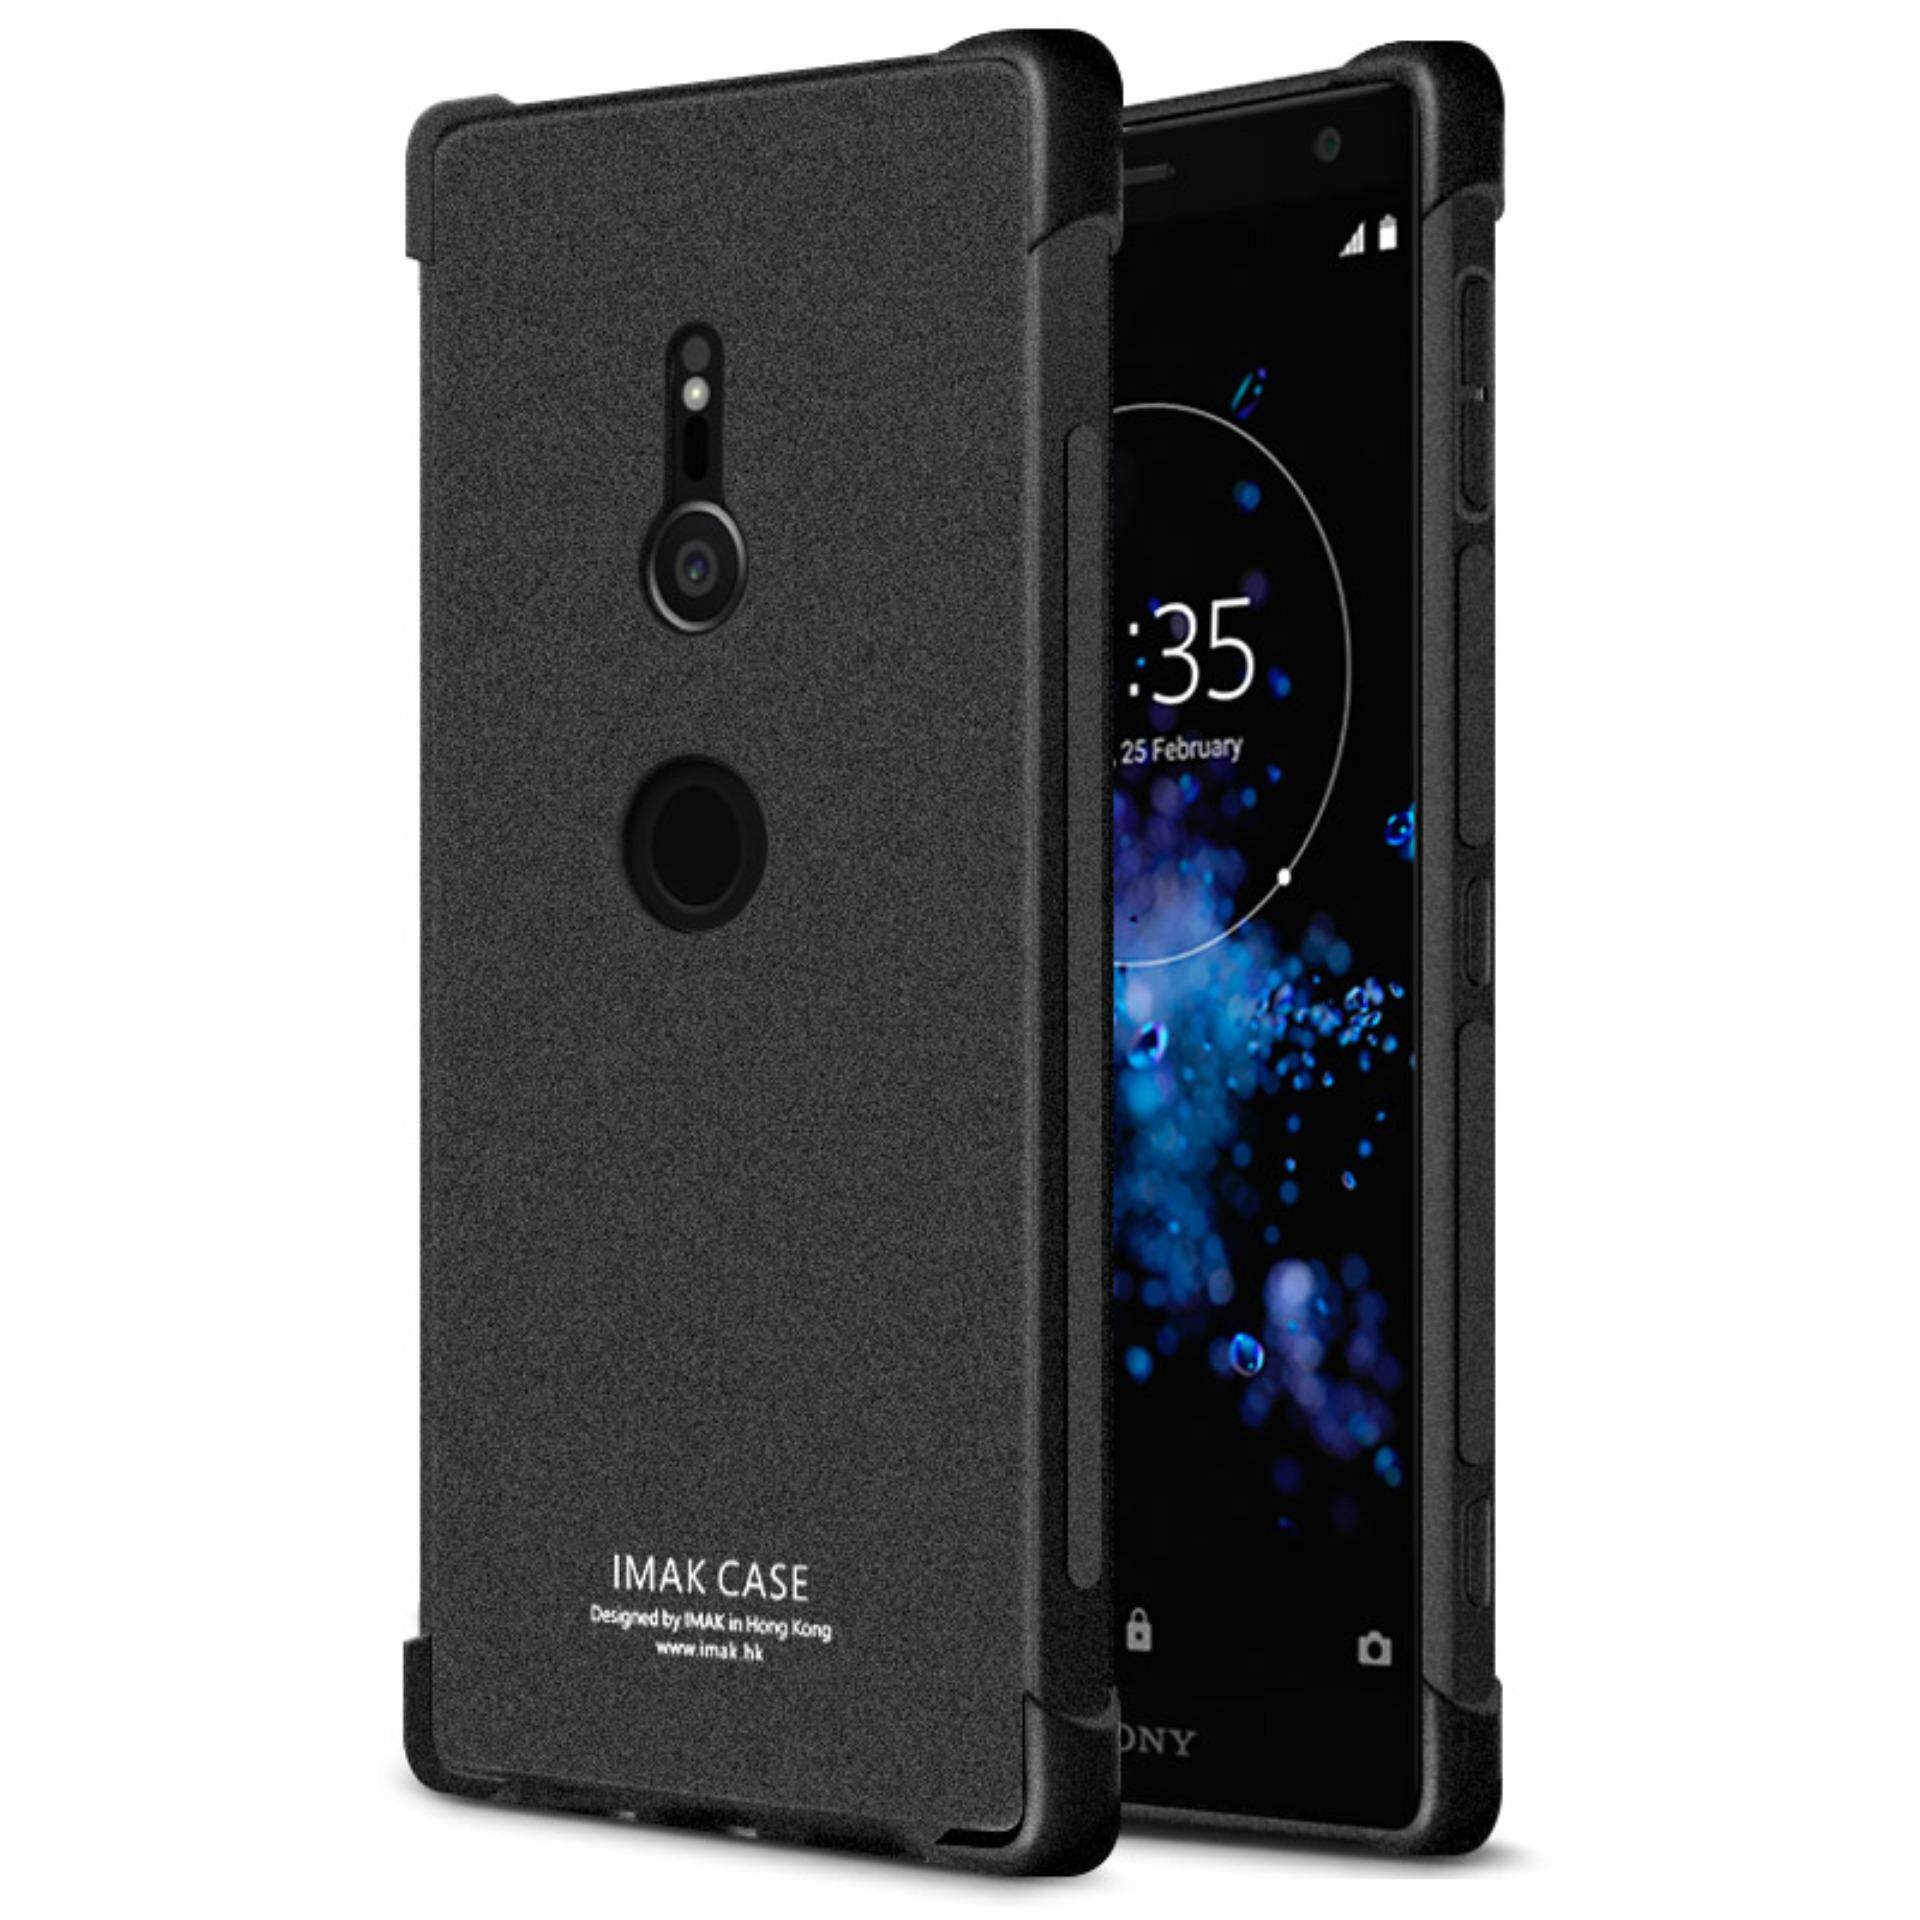 Sony Xperia XZ2 Case with Screen Protector, IMAK Ultra-thin Slim Fit Nature Shock-resistant Shockproof Bumper Soft TPU Protective Shell Back Cover Phone ...